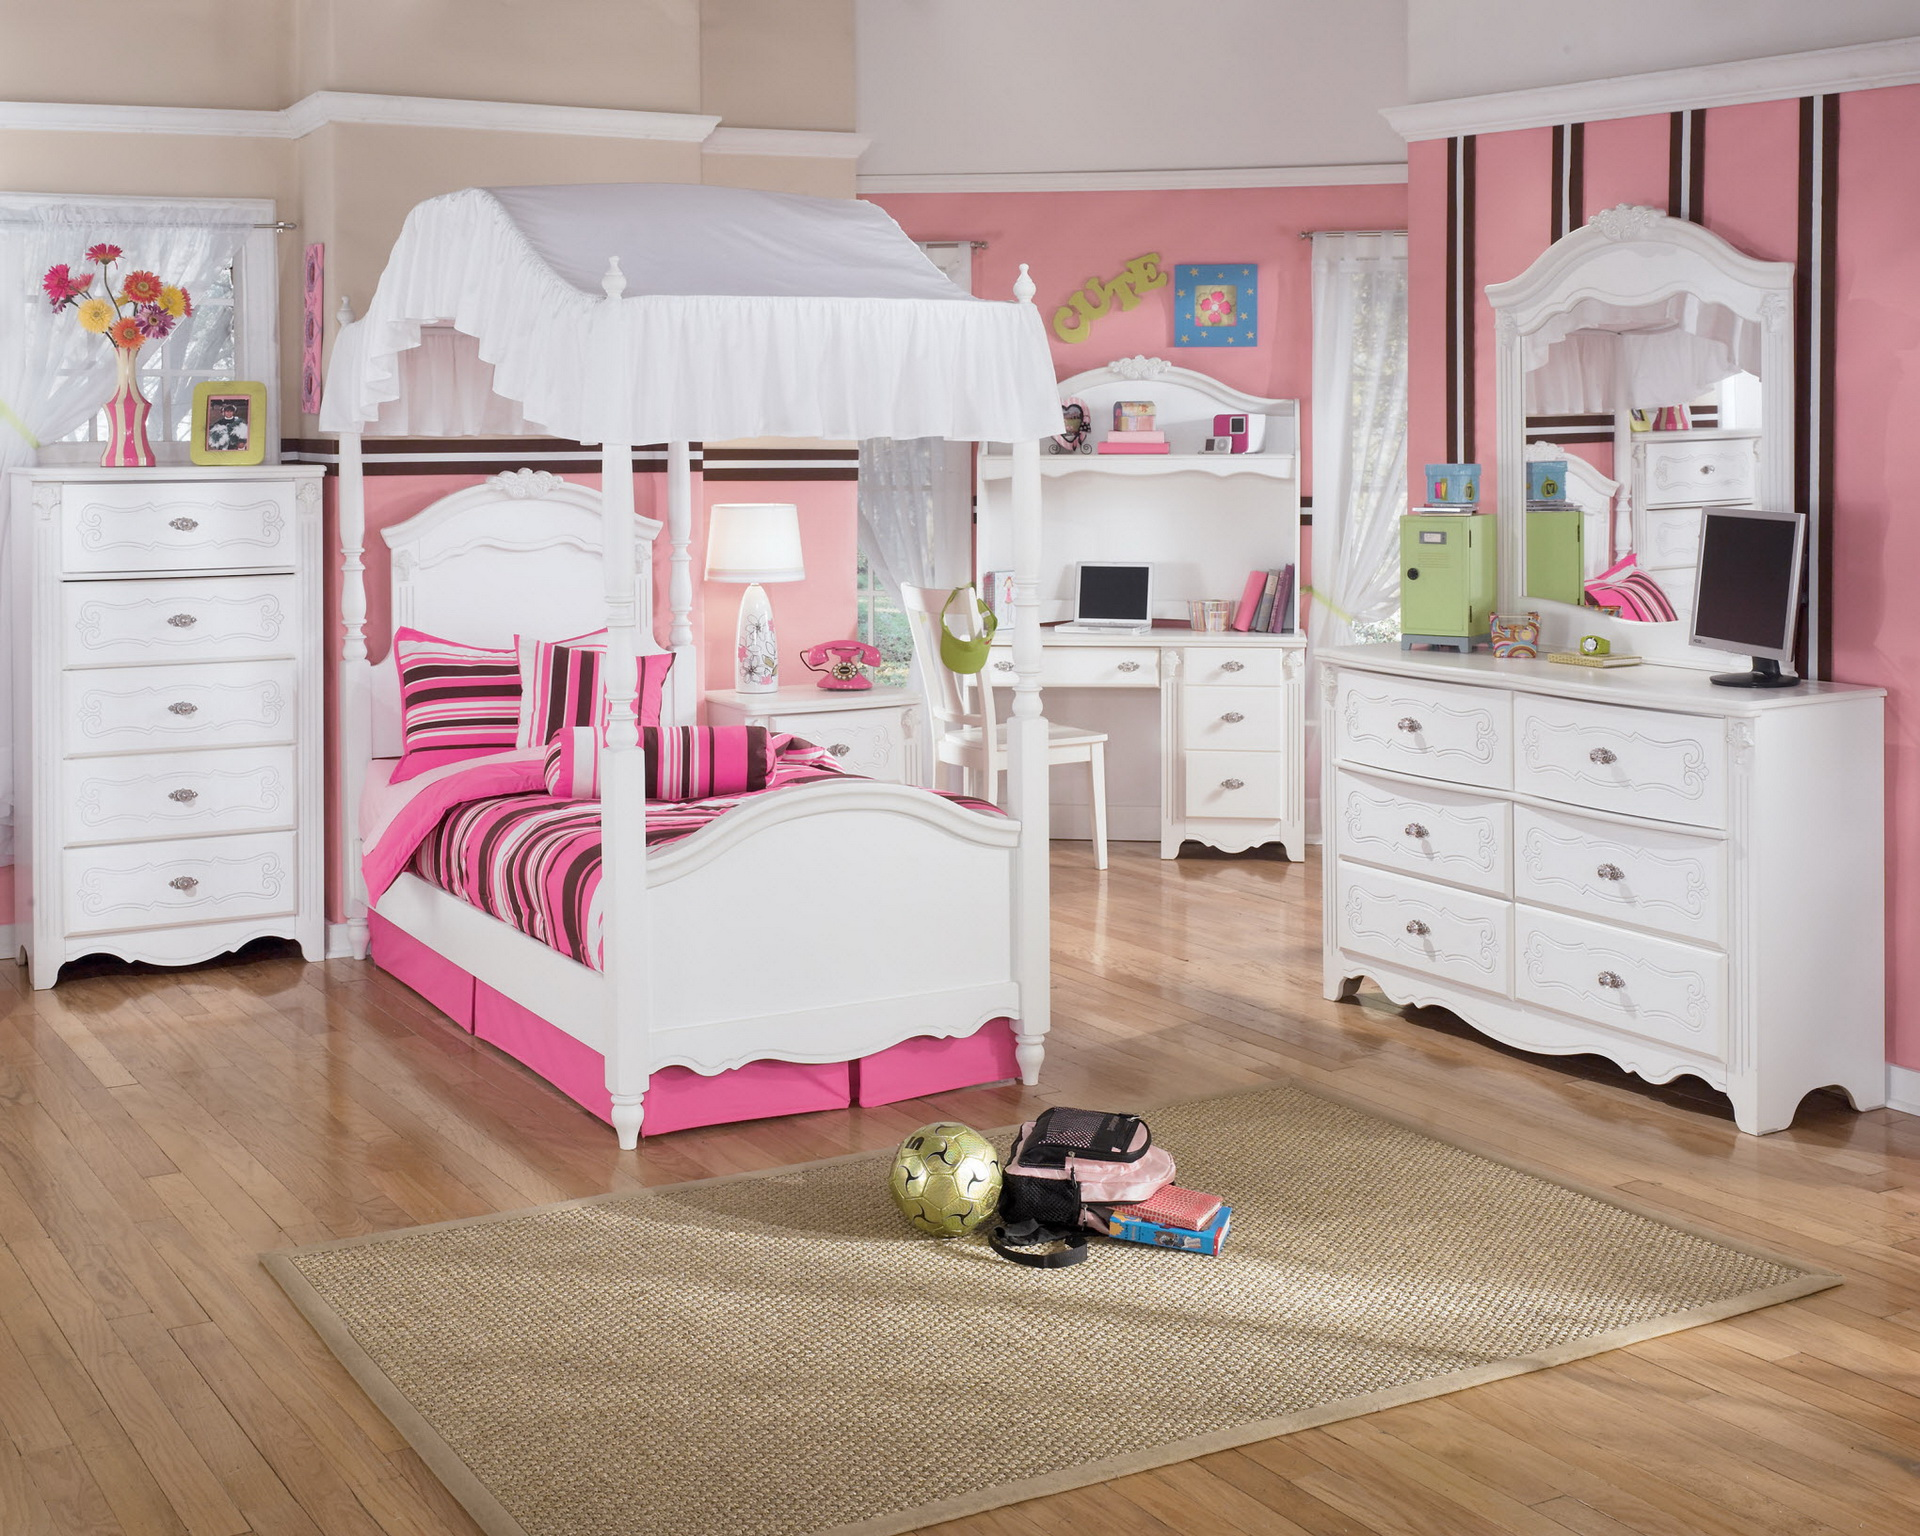 rooms to go bedroom furniture for kids - a proud bedroom for your